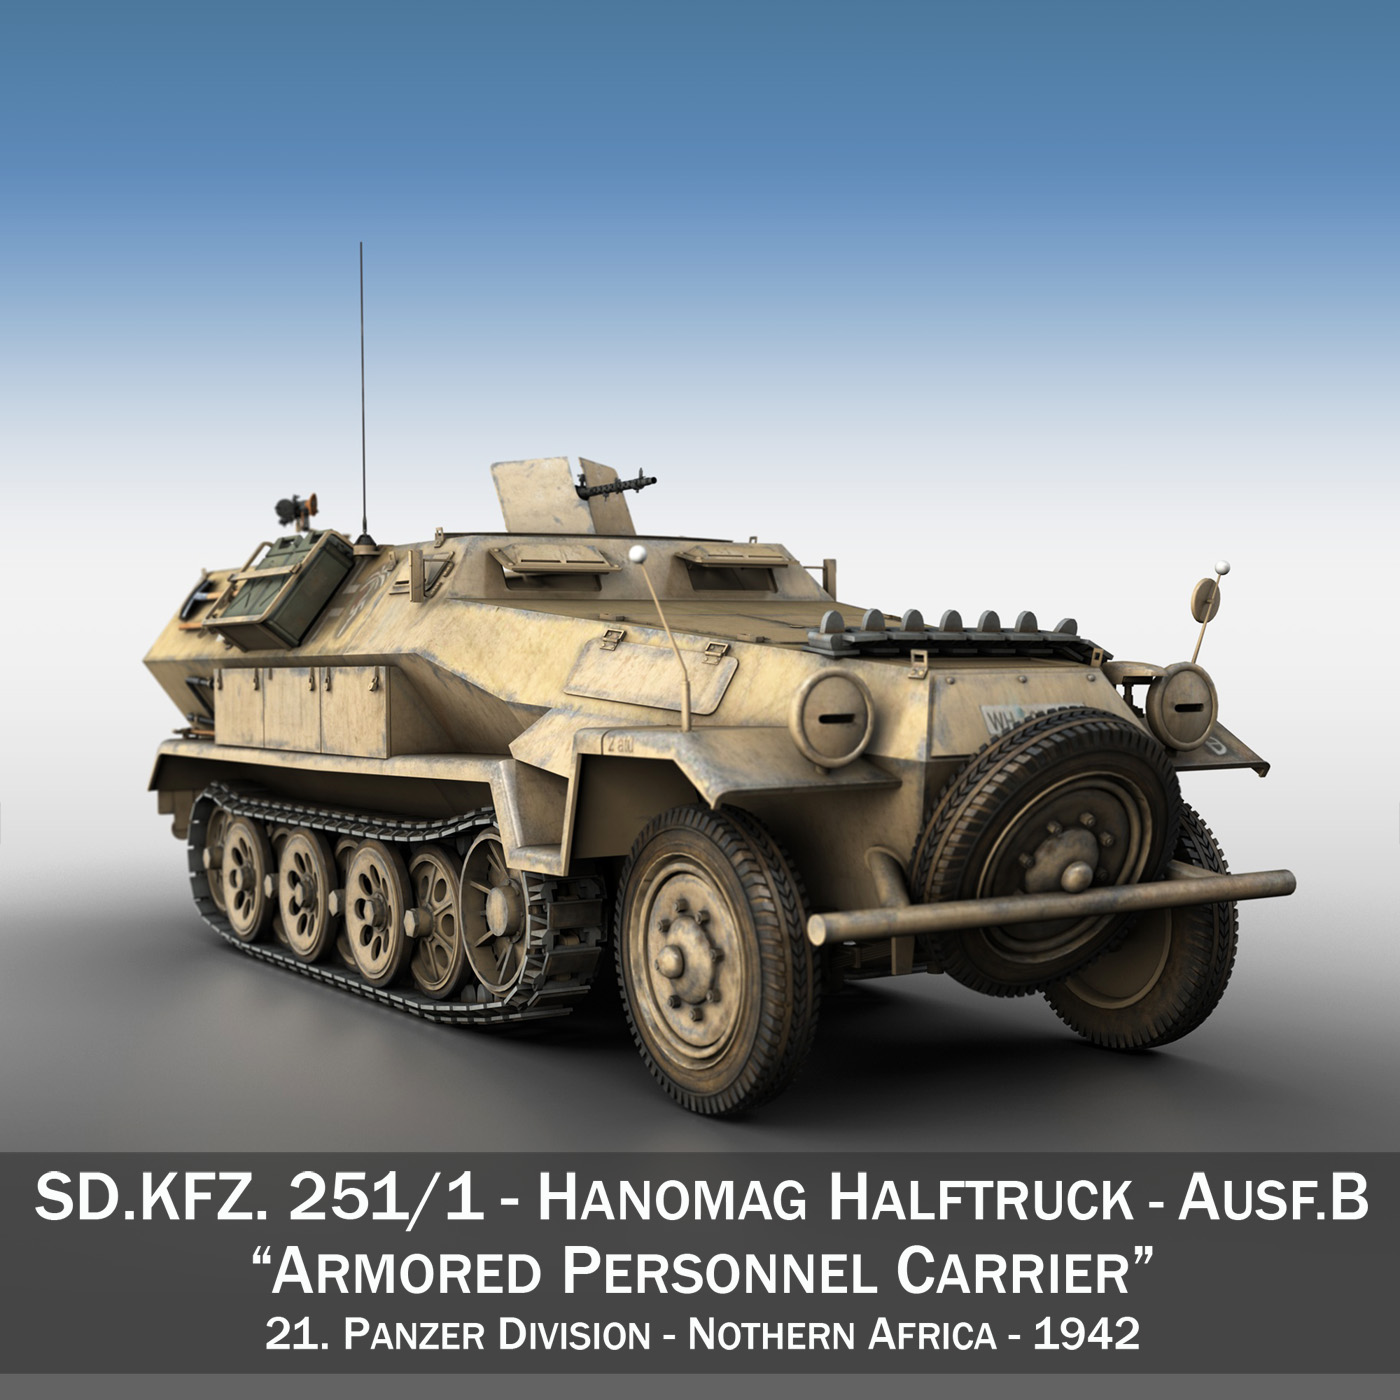 sd.kfz 251 / 1 ausf.b - dak - Model 21pd 3d 3ds fbx c4d lwo obj 275055